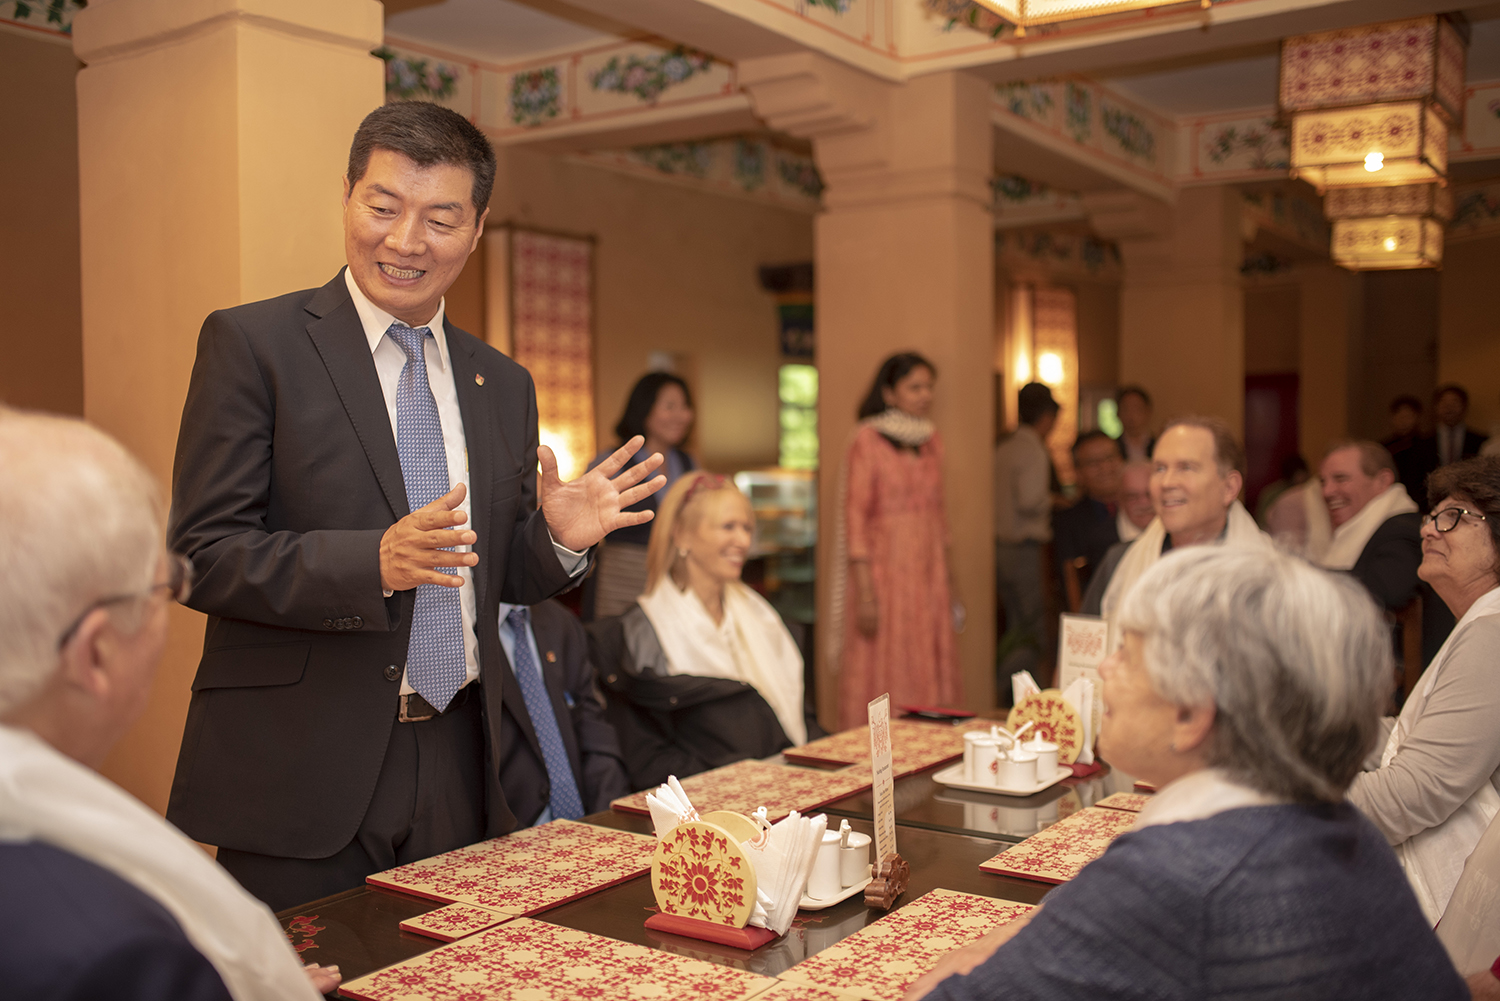 CTA President Dr. Lobsang Sangay speaking to the delegation at Norbulingka restaurant. Photo/Tenzin Jigme/CTA